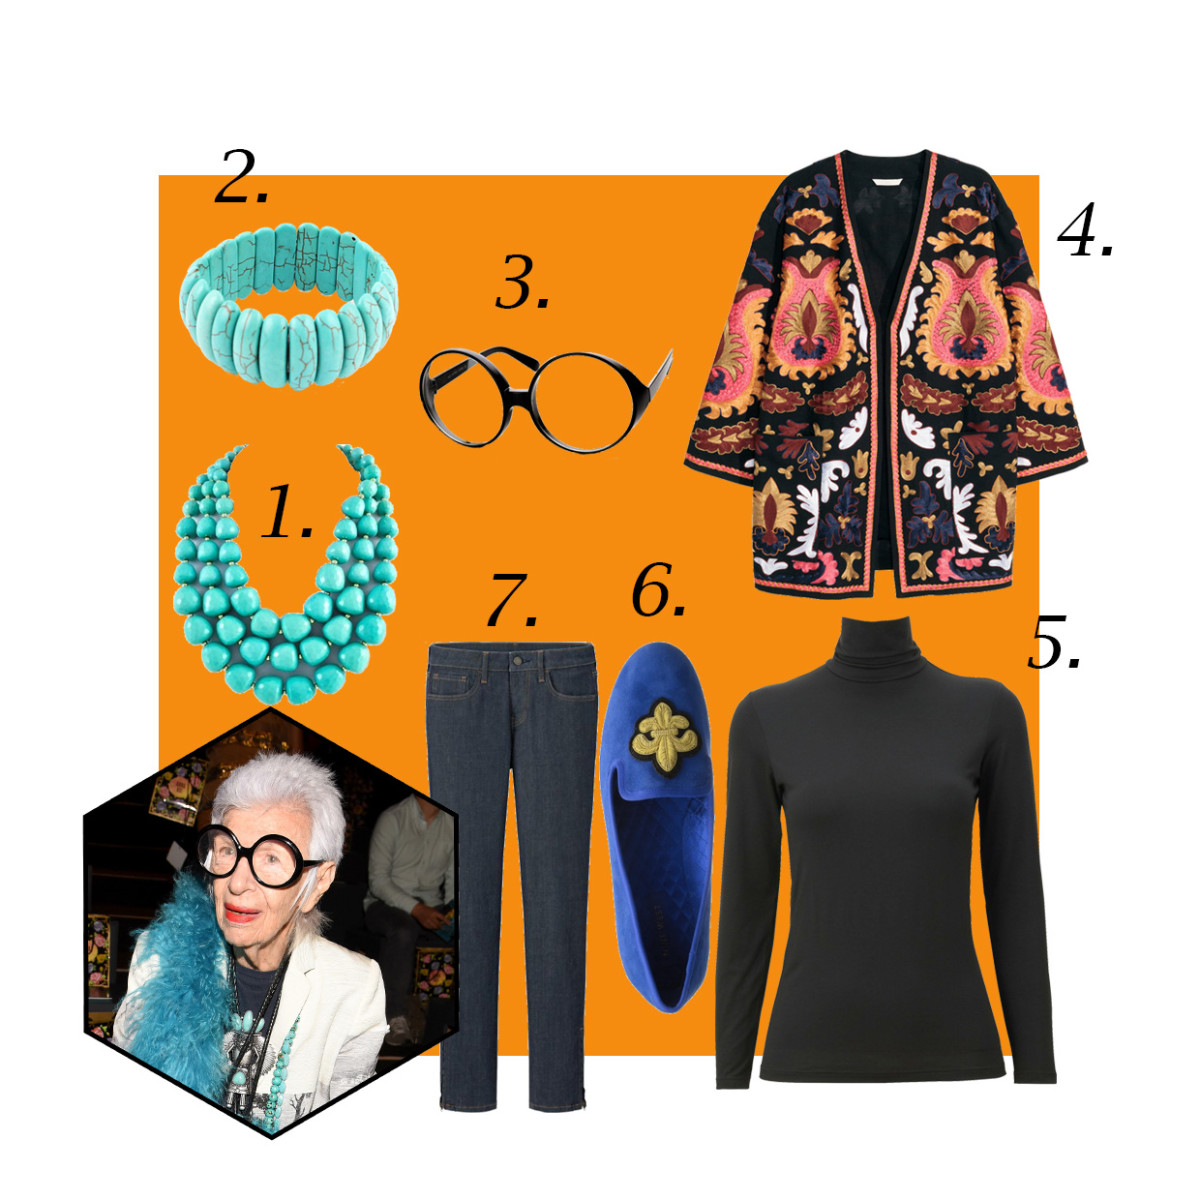 1. Chunky turquoise statement necklace, $25, available at Ebay; 2. Turquoise elastic bangles, $4.77, available at Ebay; 3. ZeroUV super large oversized glasses, $9.99, available at Rakuten; 4. H&M embroidered kimono, $129, available at H&M; 5. Uniqlo heattech turtleneck, $19.90, available at Uniqlo; 6. Nine West leyna loafer, $26.70, available at Amazon; 7. Uniqlo ankle-length jeans, $49.90, available at Uniqlo. Photo: Vivien Killilea/Getty Images